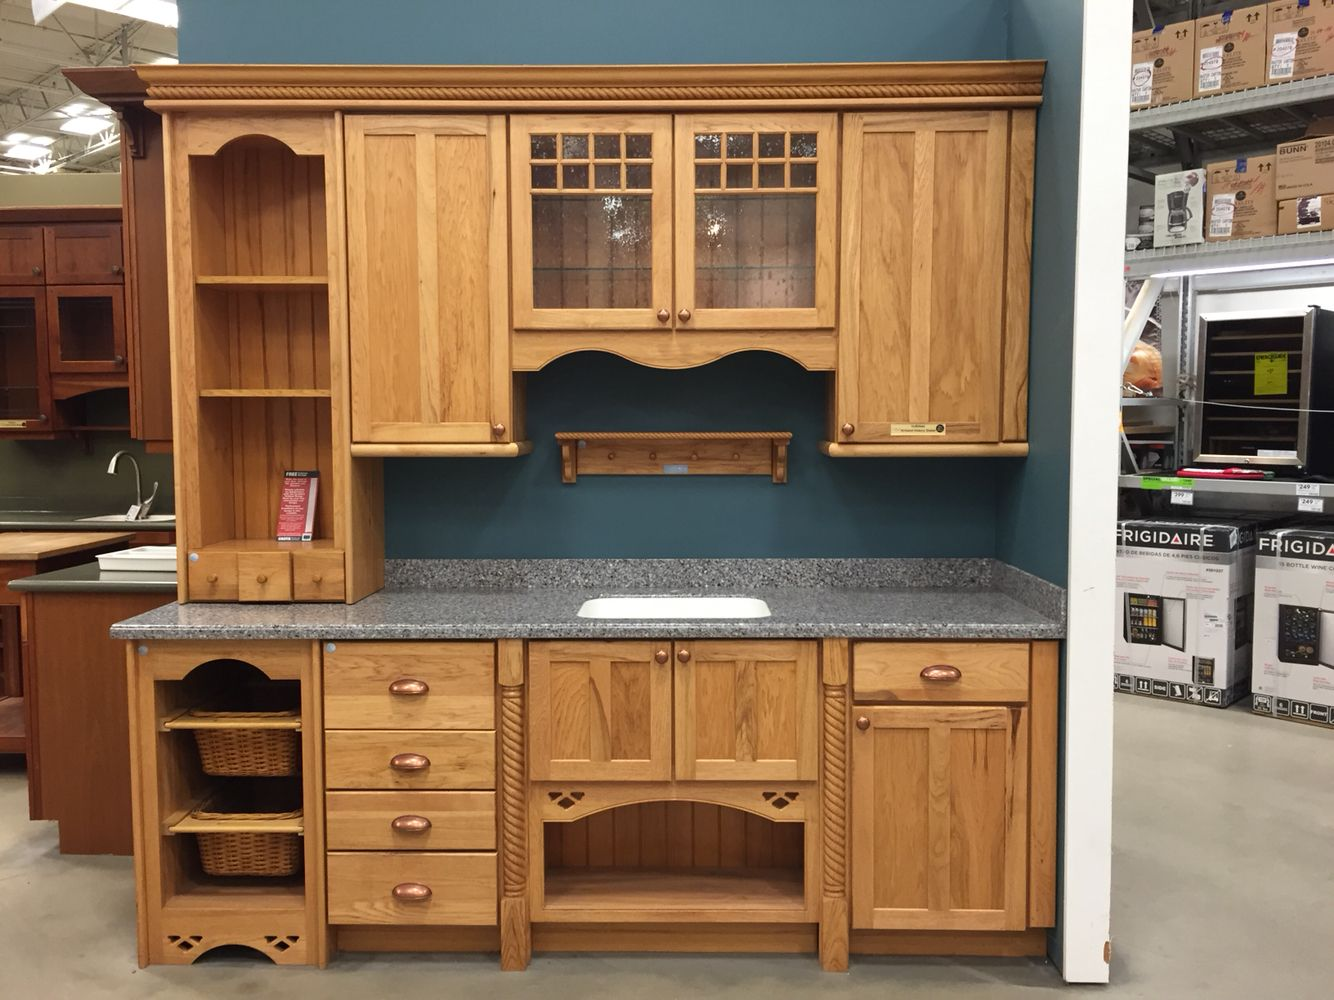 Home Depot has my dream kitchen I want them in a